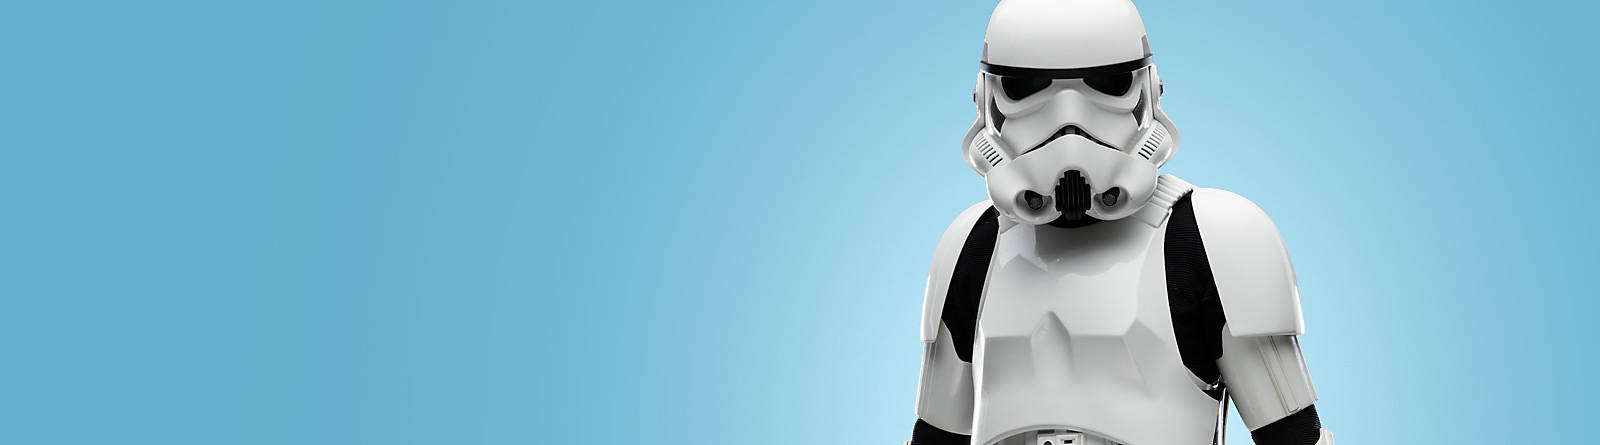 Stormtrooper Check out our range of Star Wars Storm Trooper merchandise featuring collectibles, costumes, toys and more